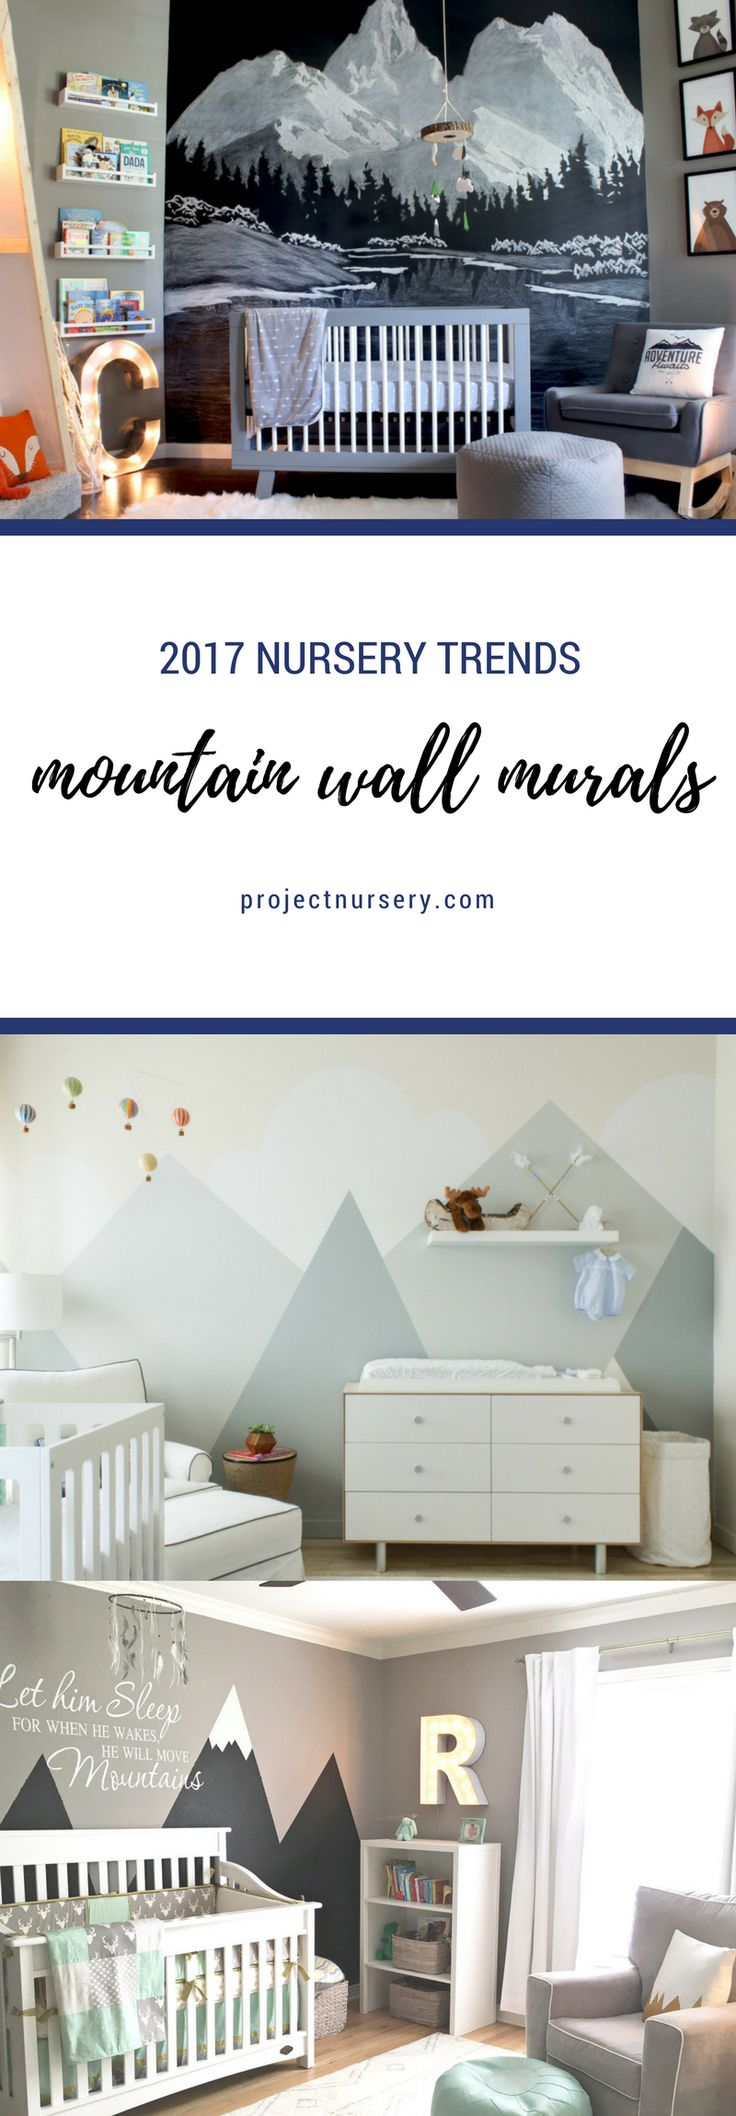 2017 Nursery Trends: Mountain Wall Murals